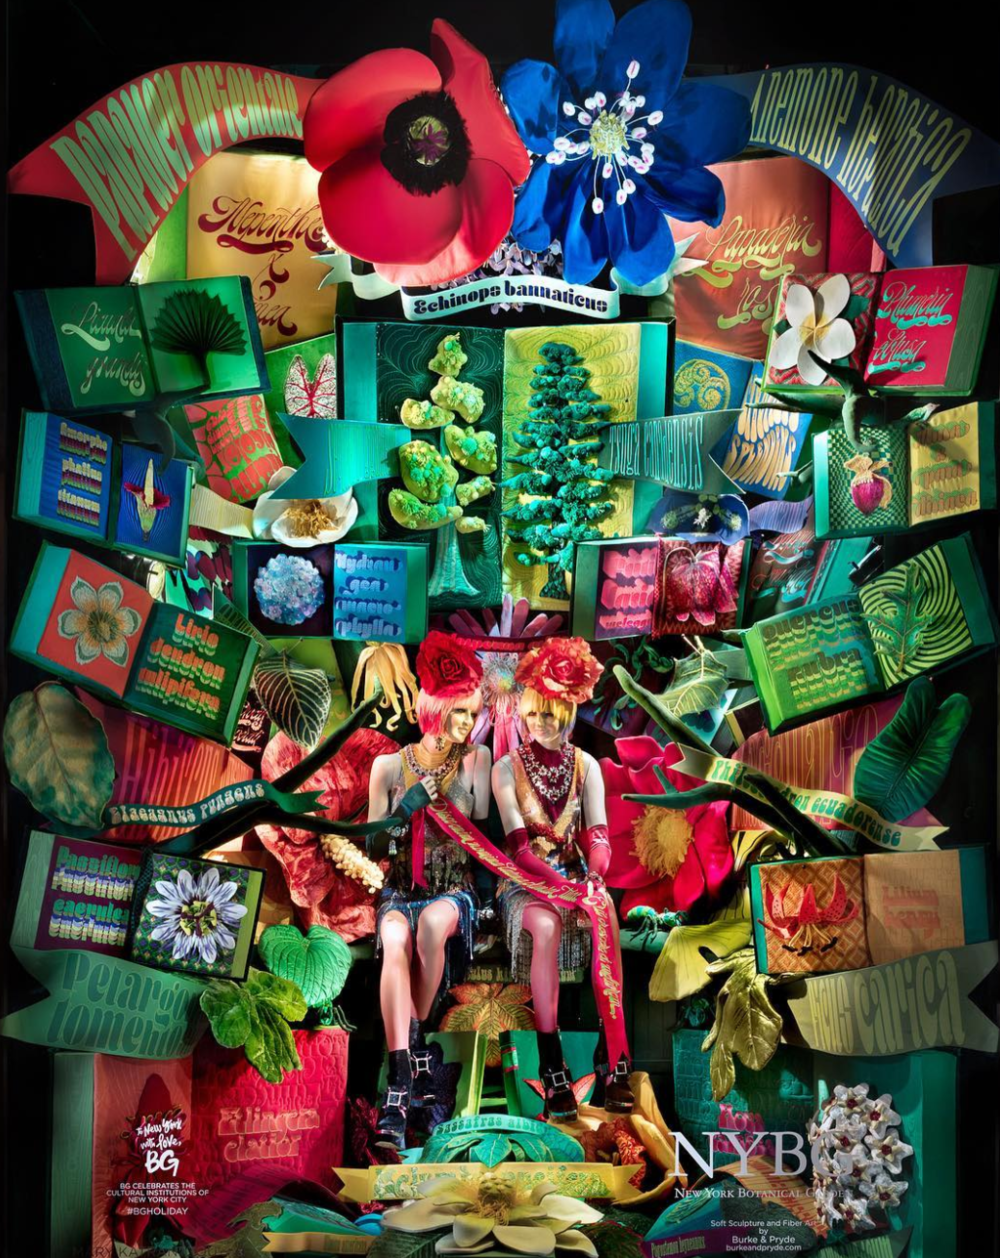 3. WALK THROUGH: The holiday window displays on Fifth Avenue